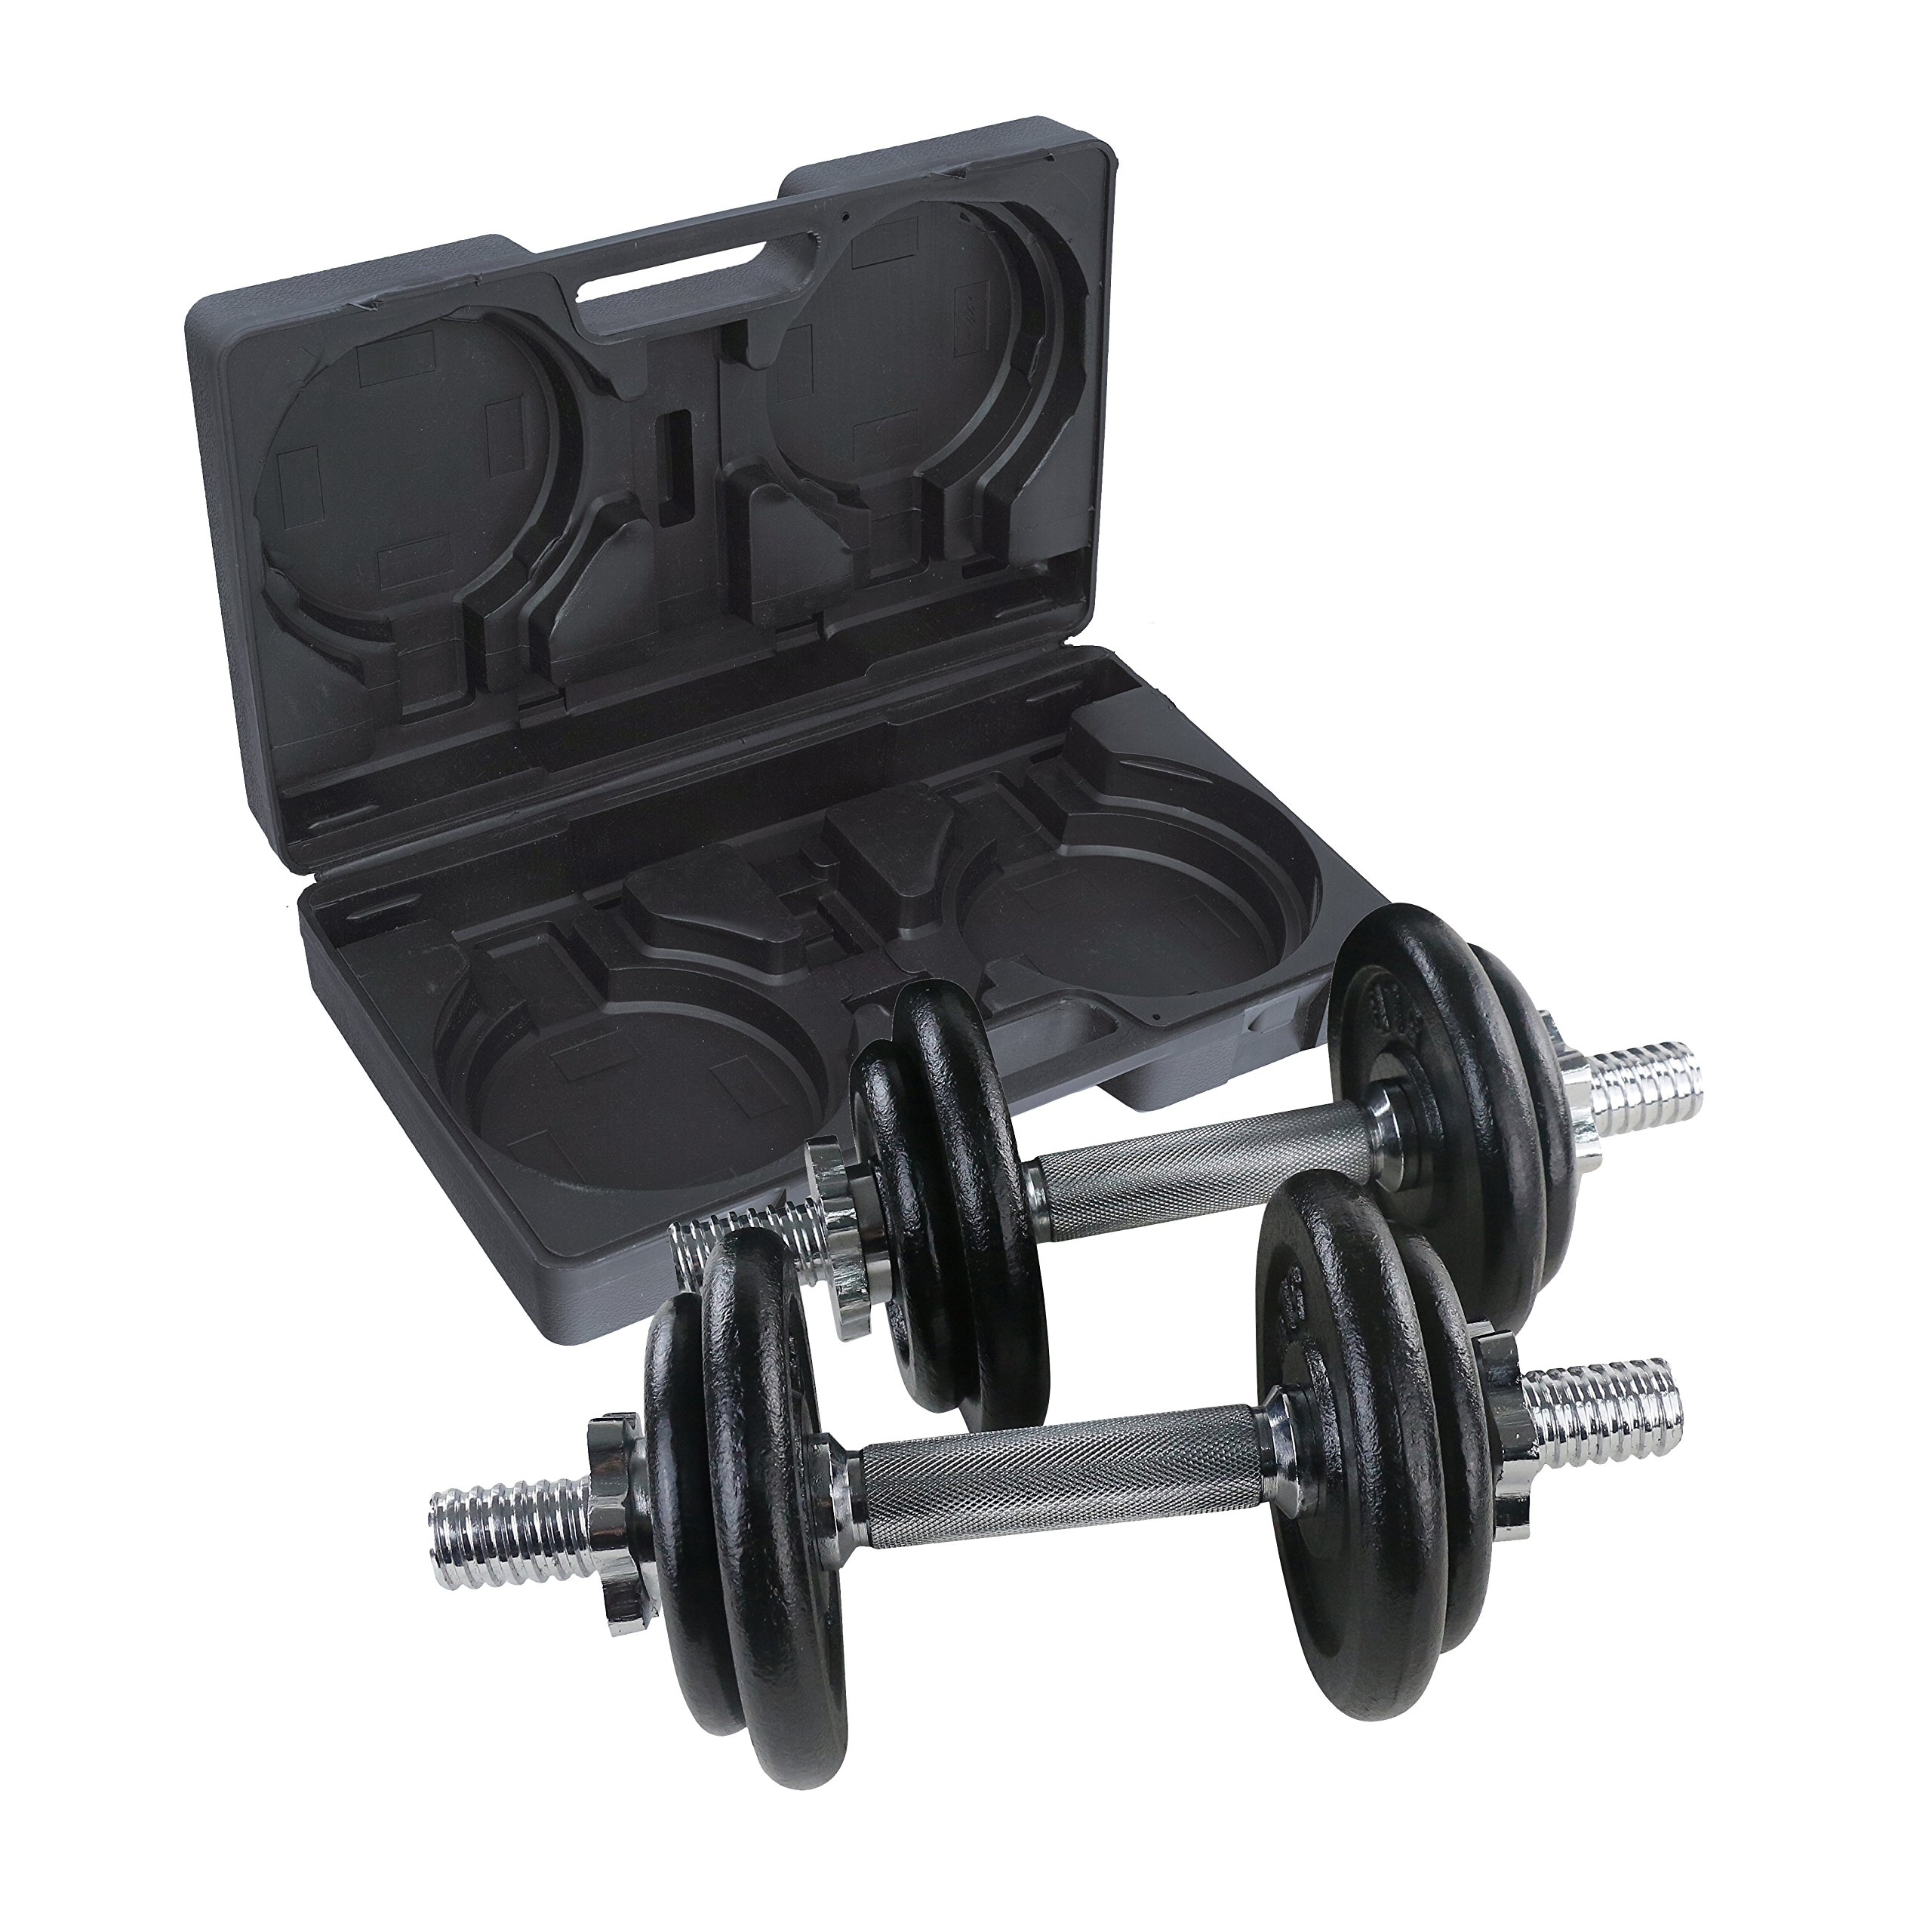 Maha Fitness 40 LB. Adjustable Neoprene Coated Dumbbell Set - Workout Weights for Home Training